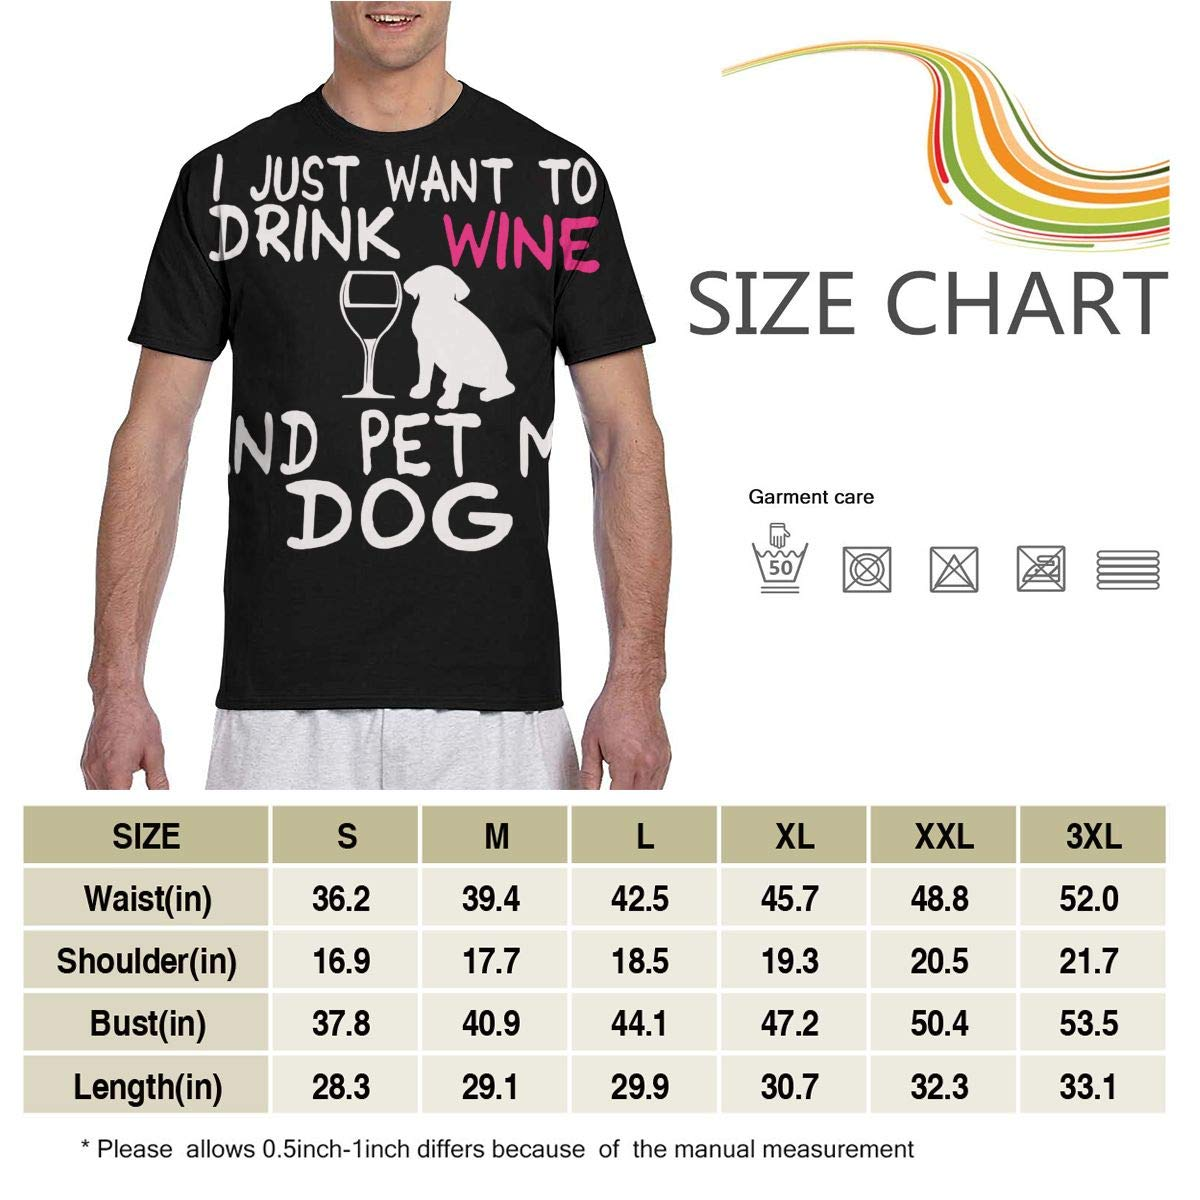 I Just Want to Drink Wine and Pet My Dog Mens Short Sleeve T-Shirt Print Tees Tops